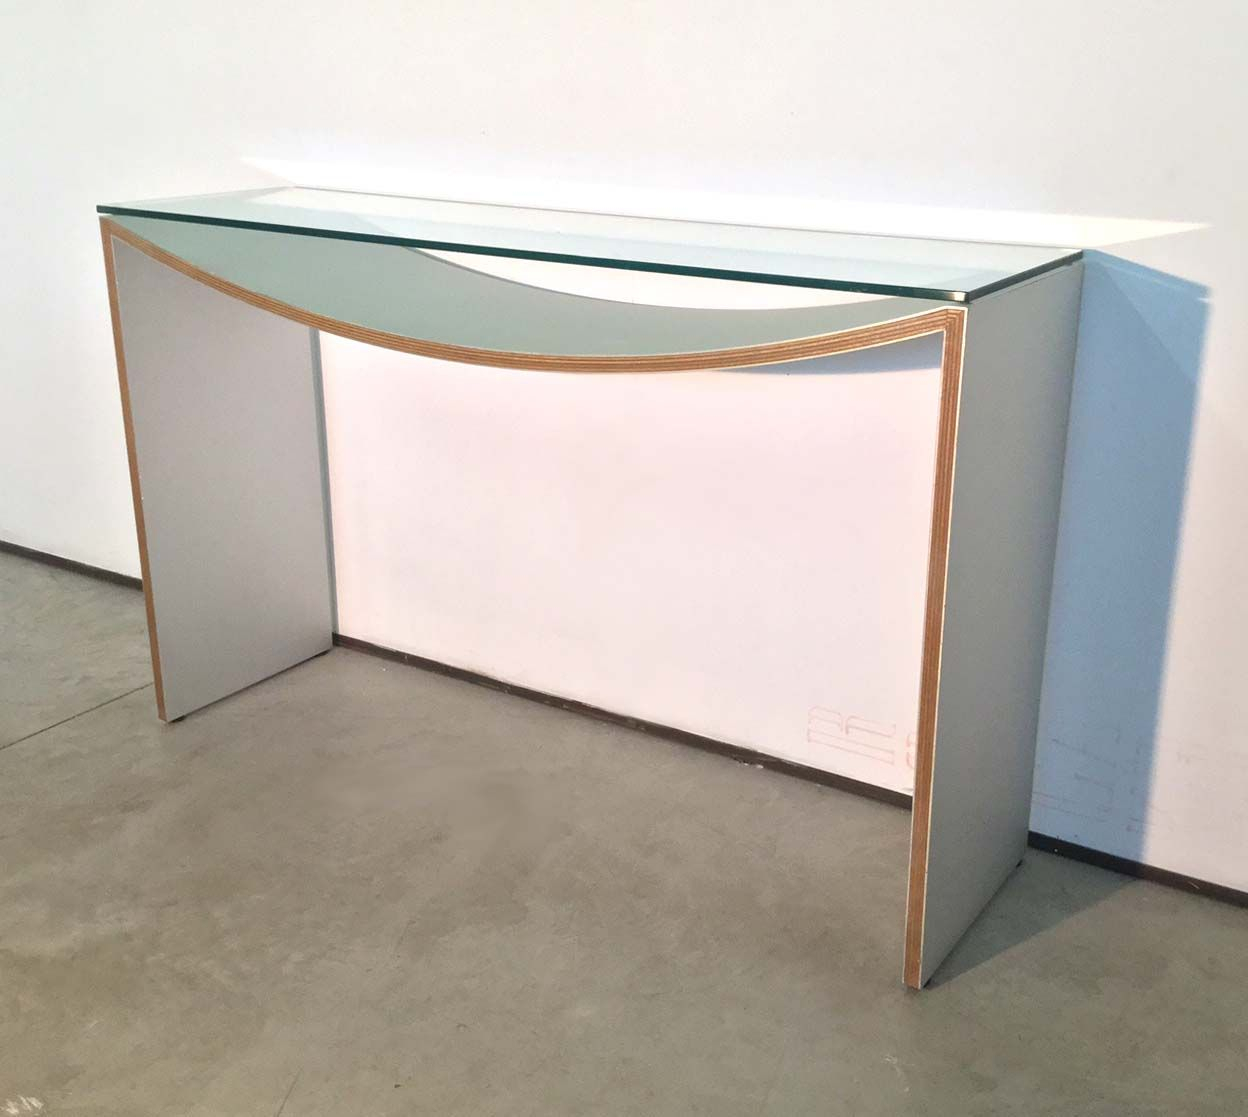 6 Console Side Tableversace For Sale At Pamono Half Round Regarding Echelon Console Tables (Gallery 8 of 30)